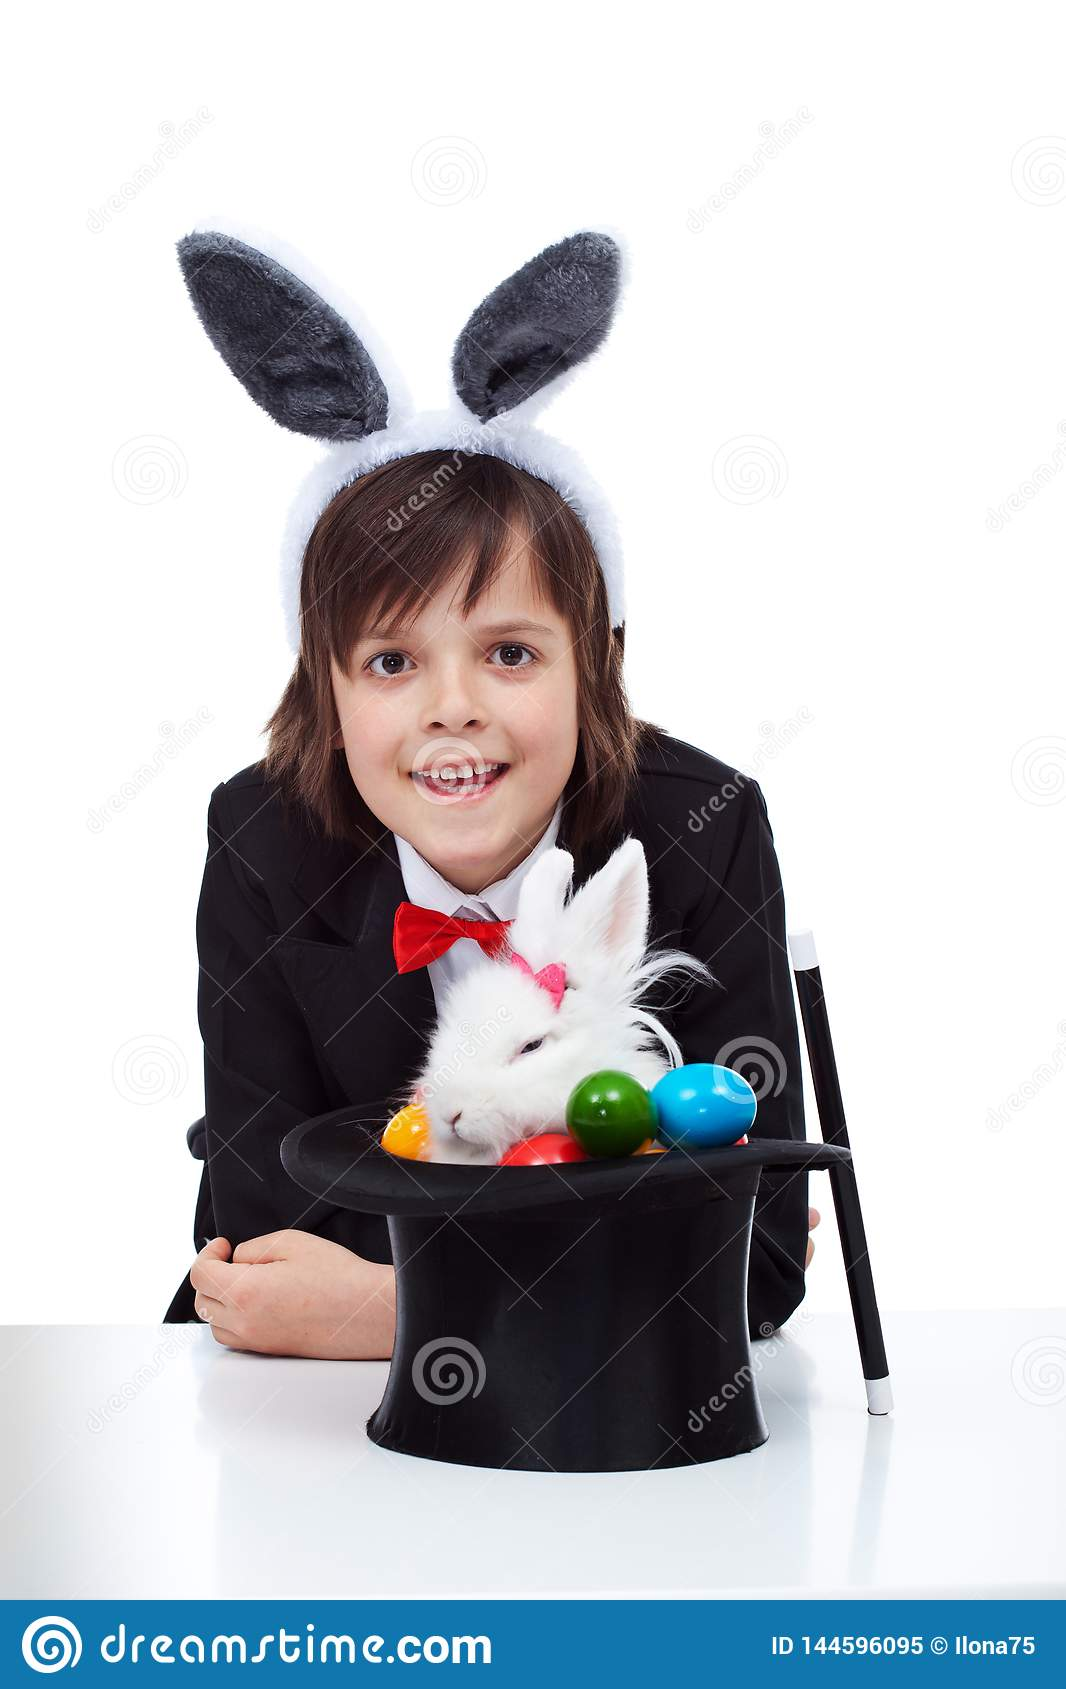 Happy magician boy smile after successfully pulling a grumpy easter bunny from the hat